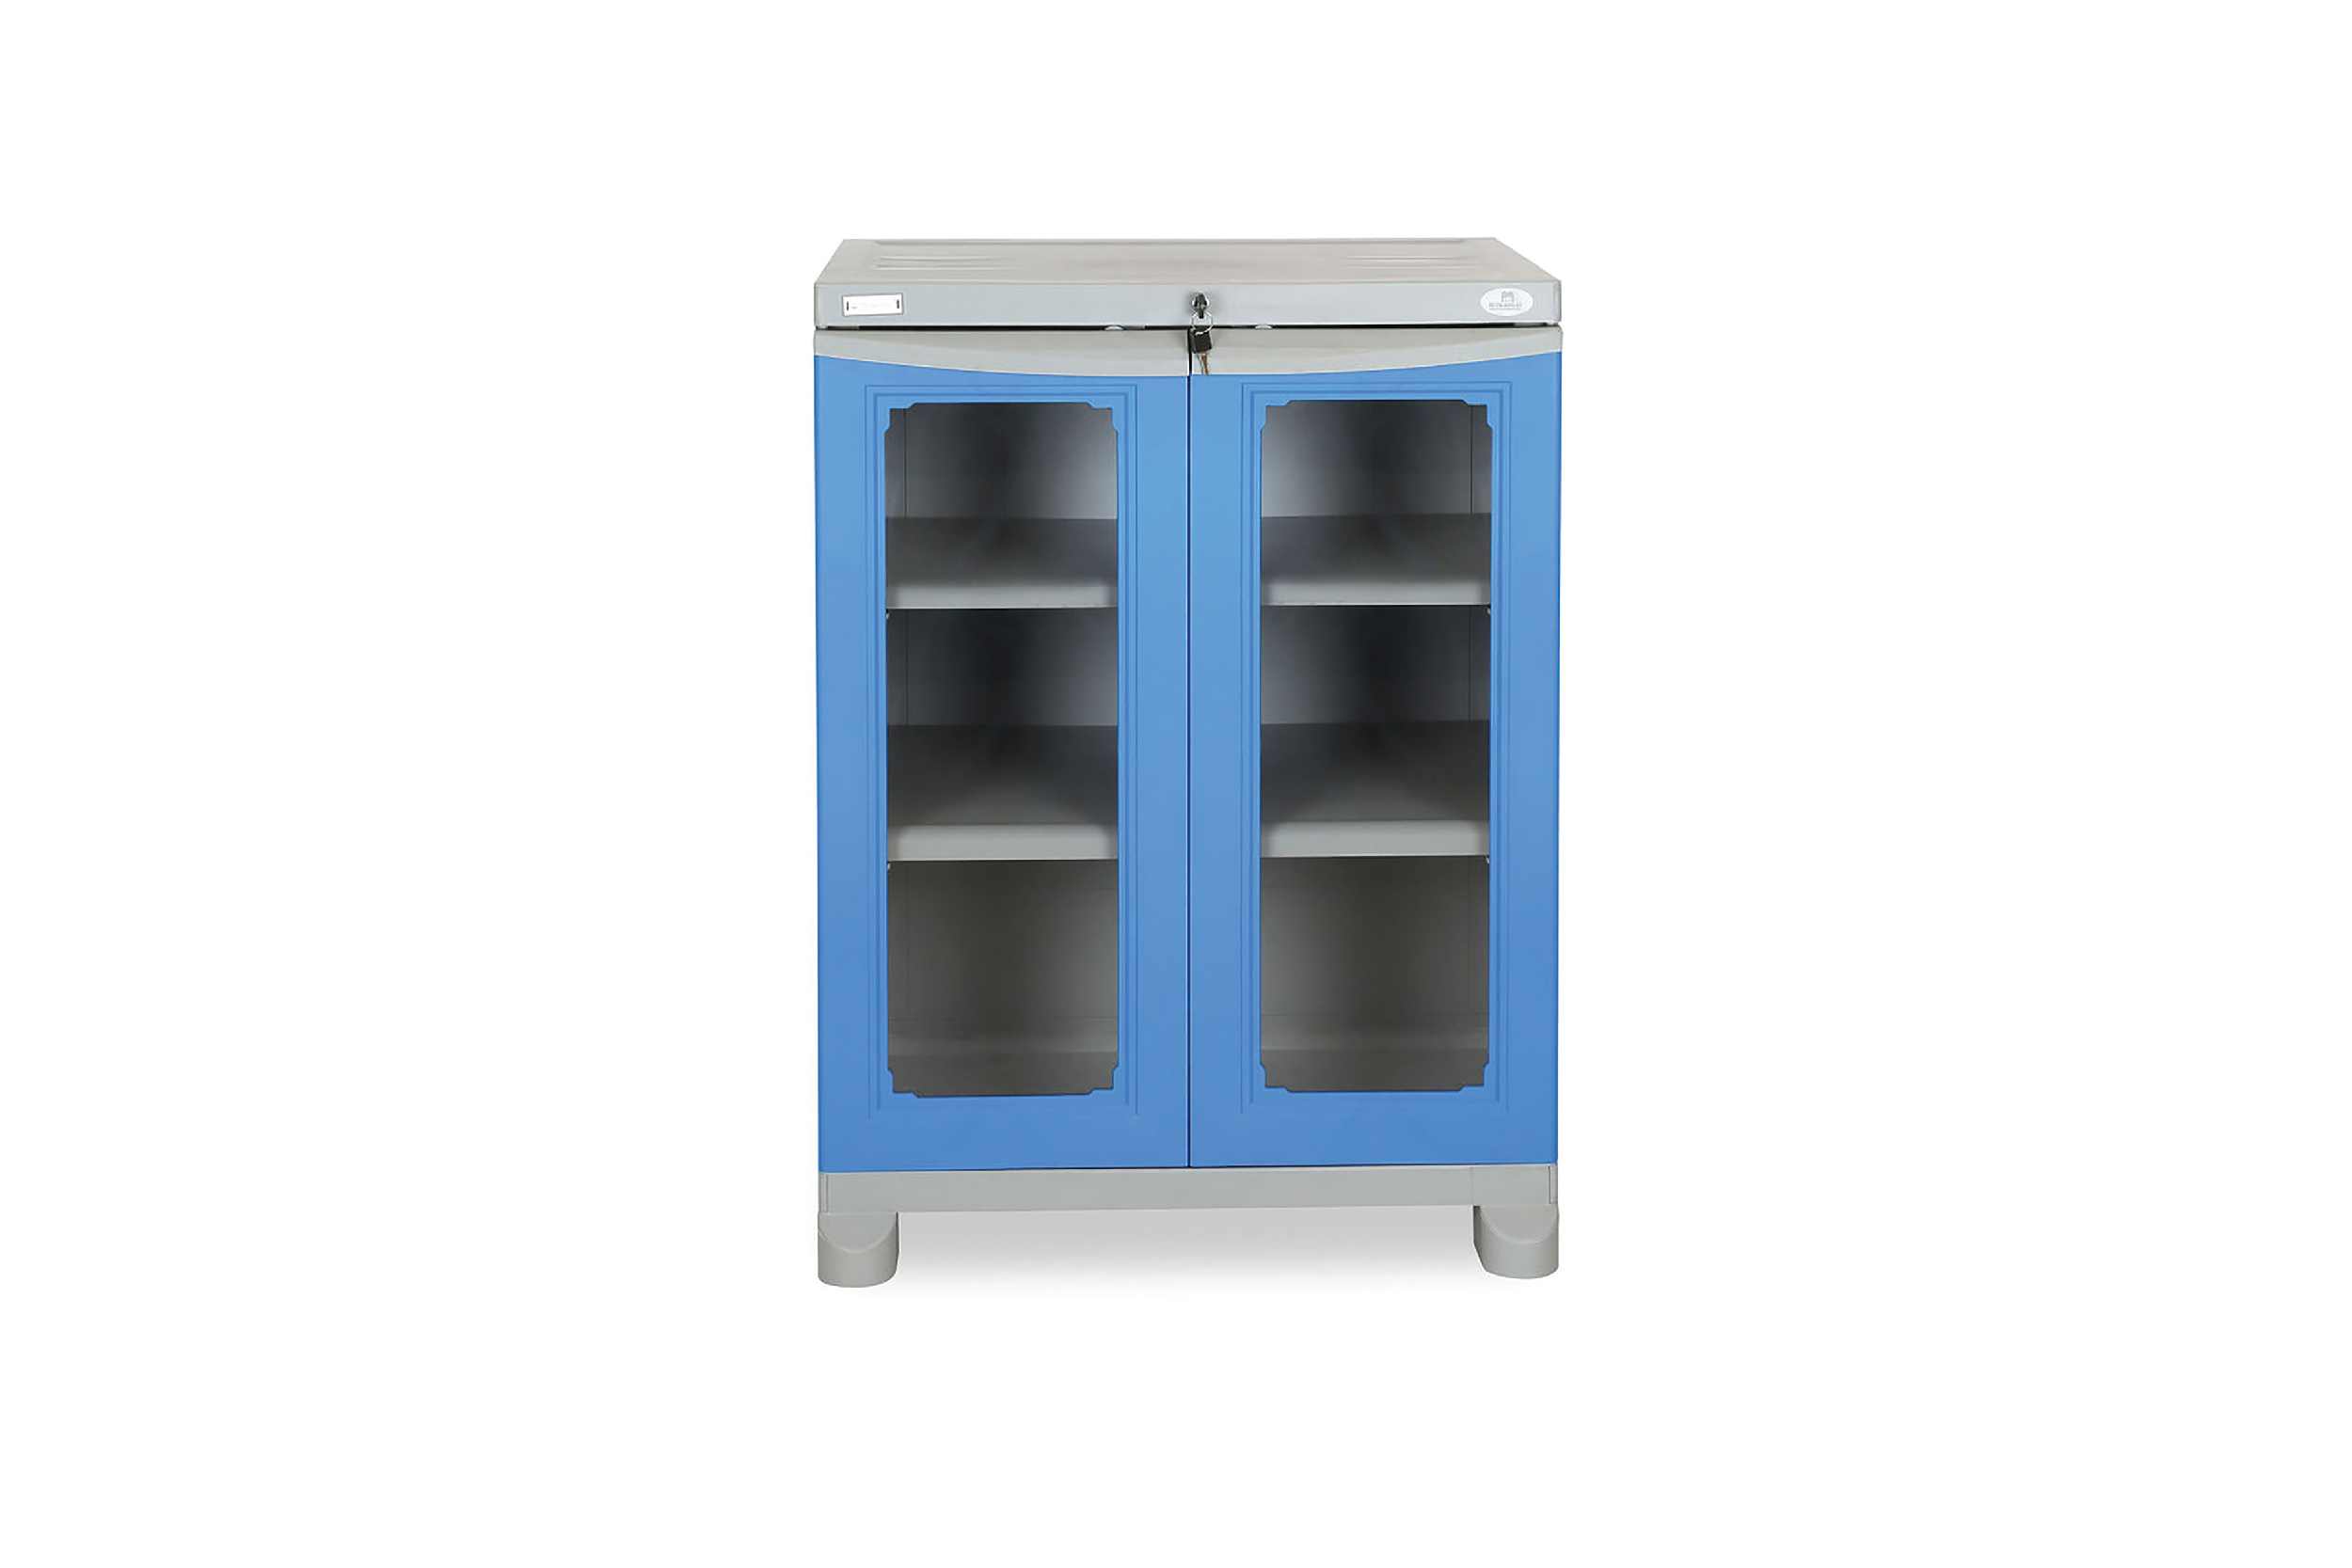 Nilkamal Freedom Small Cabinet - Deep Blue and Grey